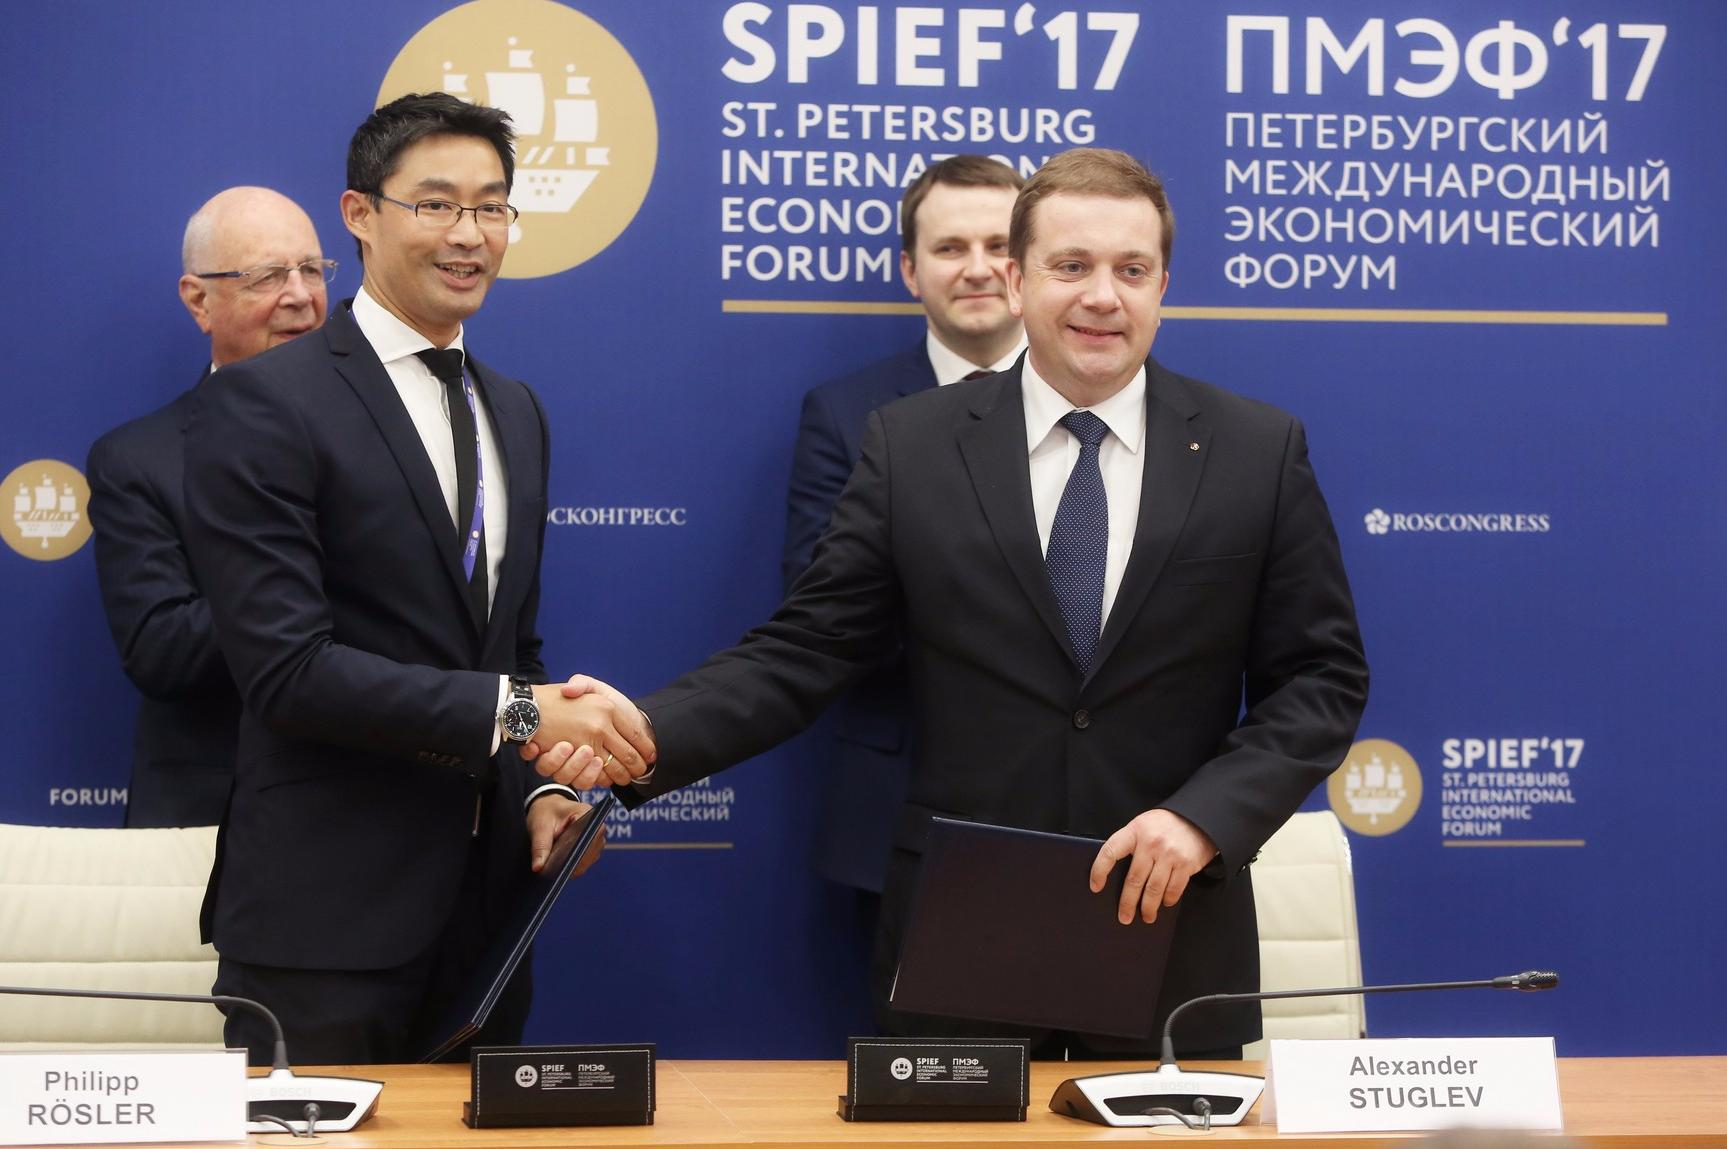 Roscongress Foundation and World Economic Forum sign memorandum on cooperation